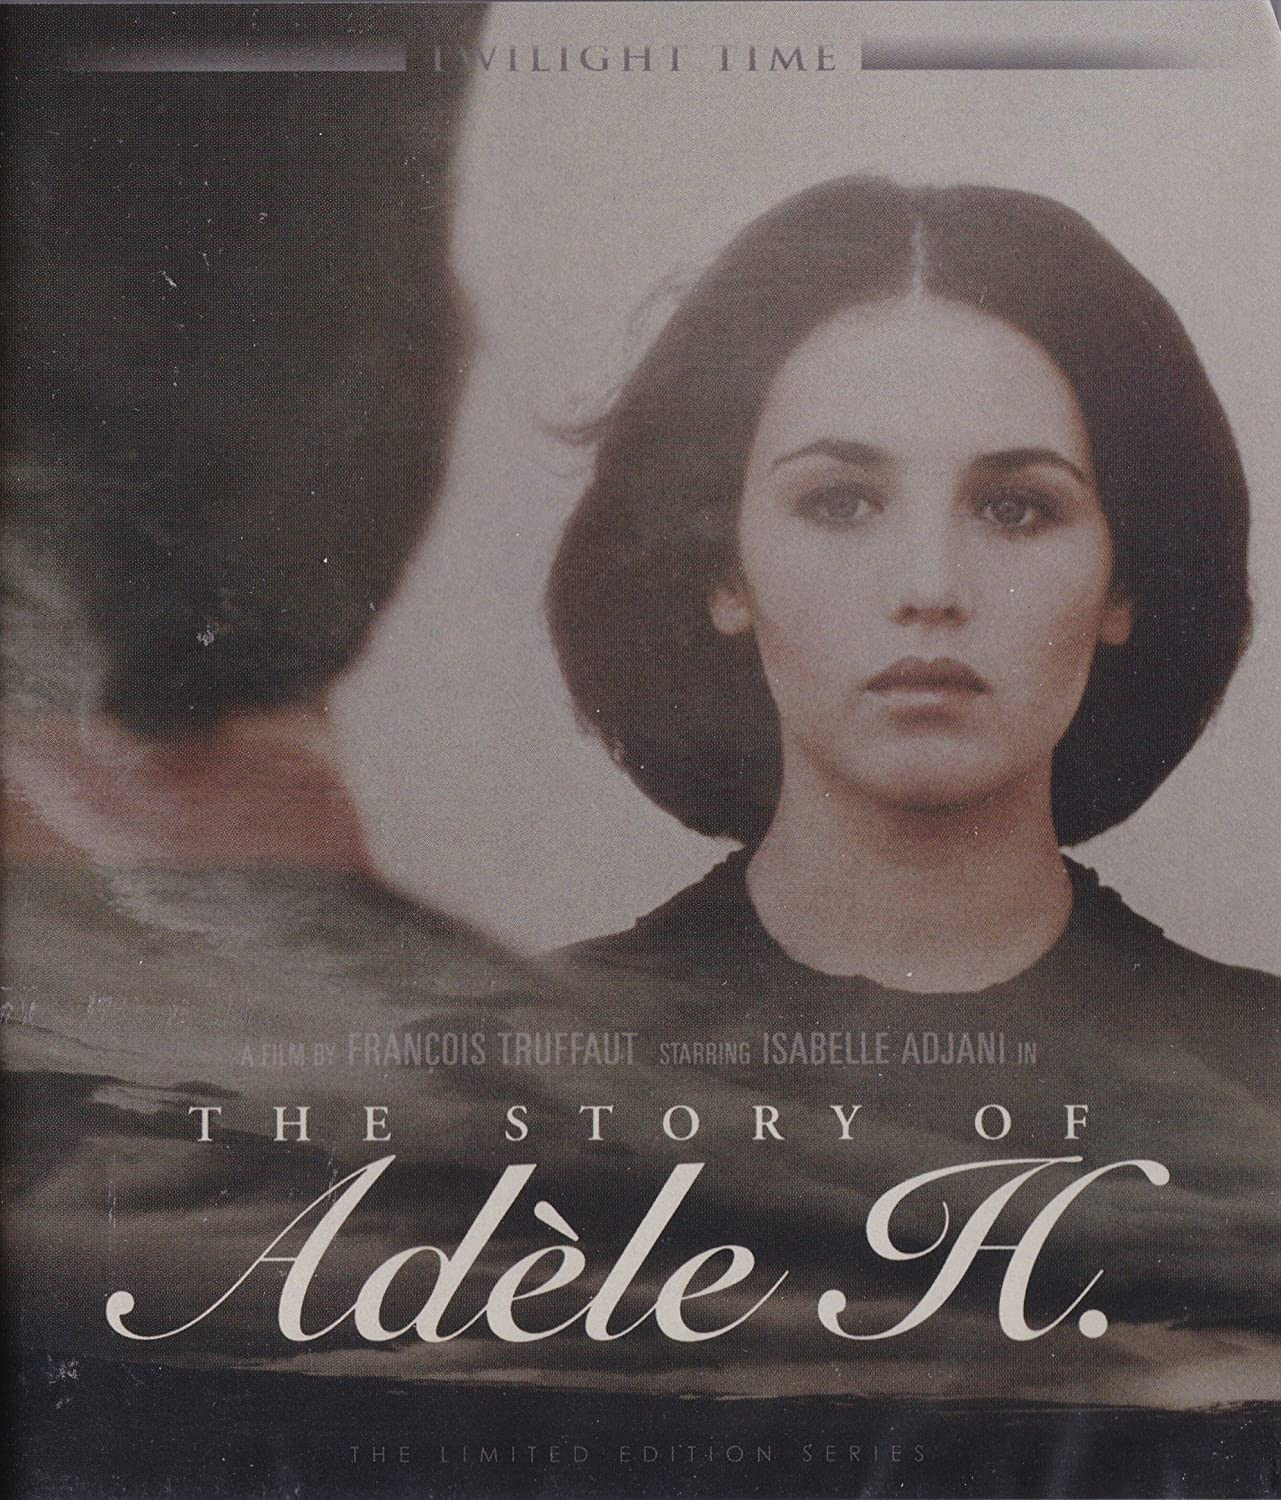 042b49e58c Blu-ray Review: The Story of Adele H. - Slant Magazine